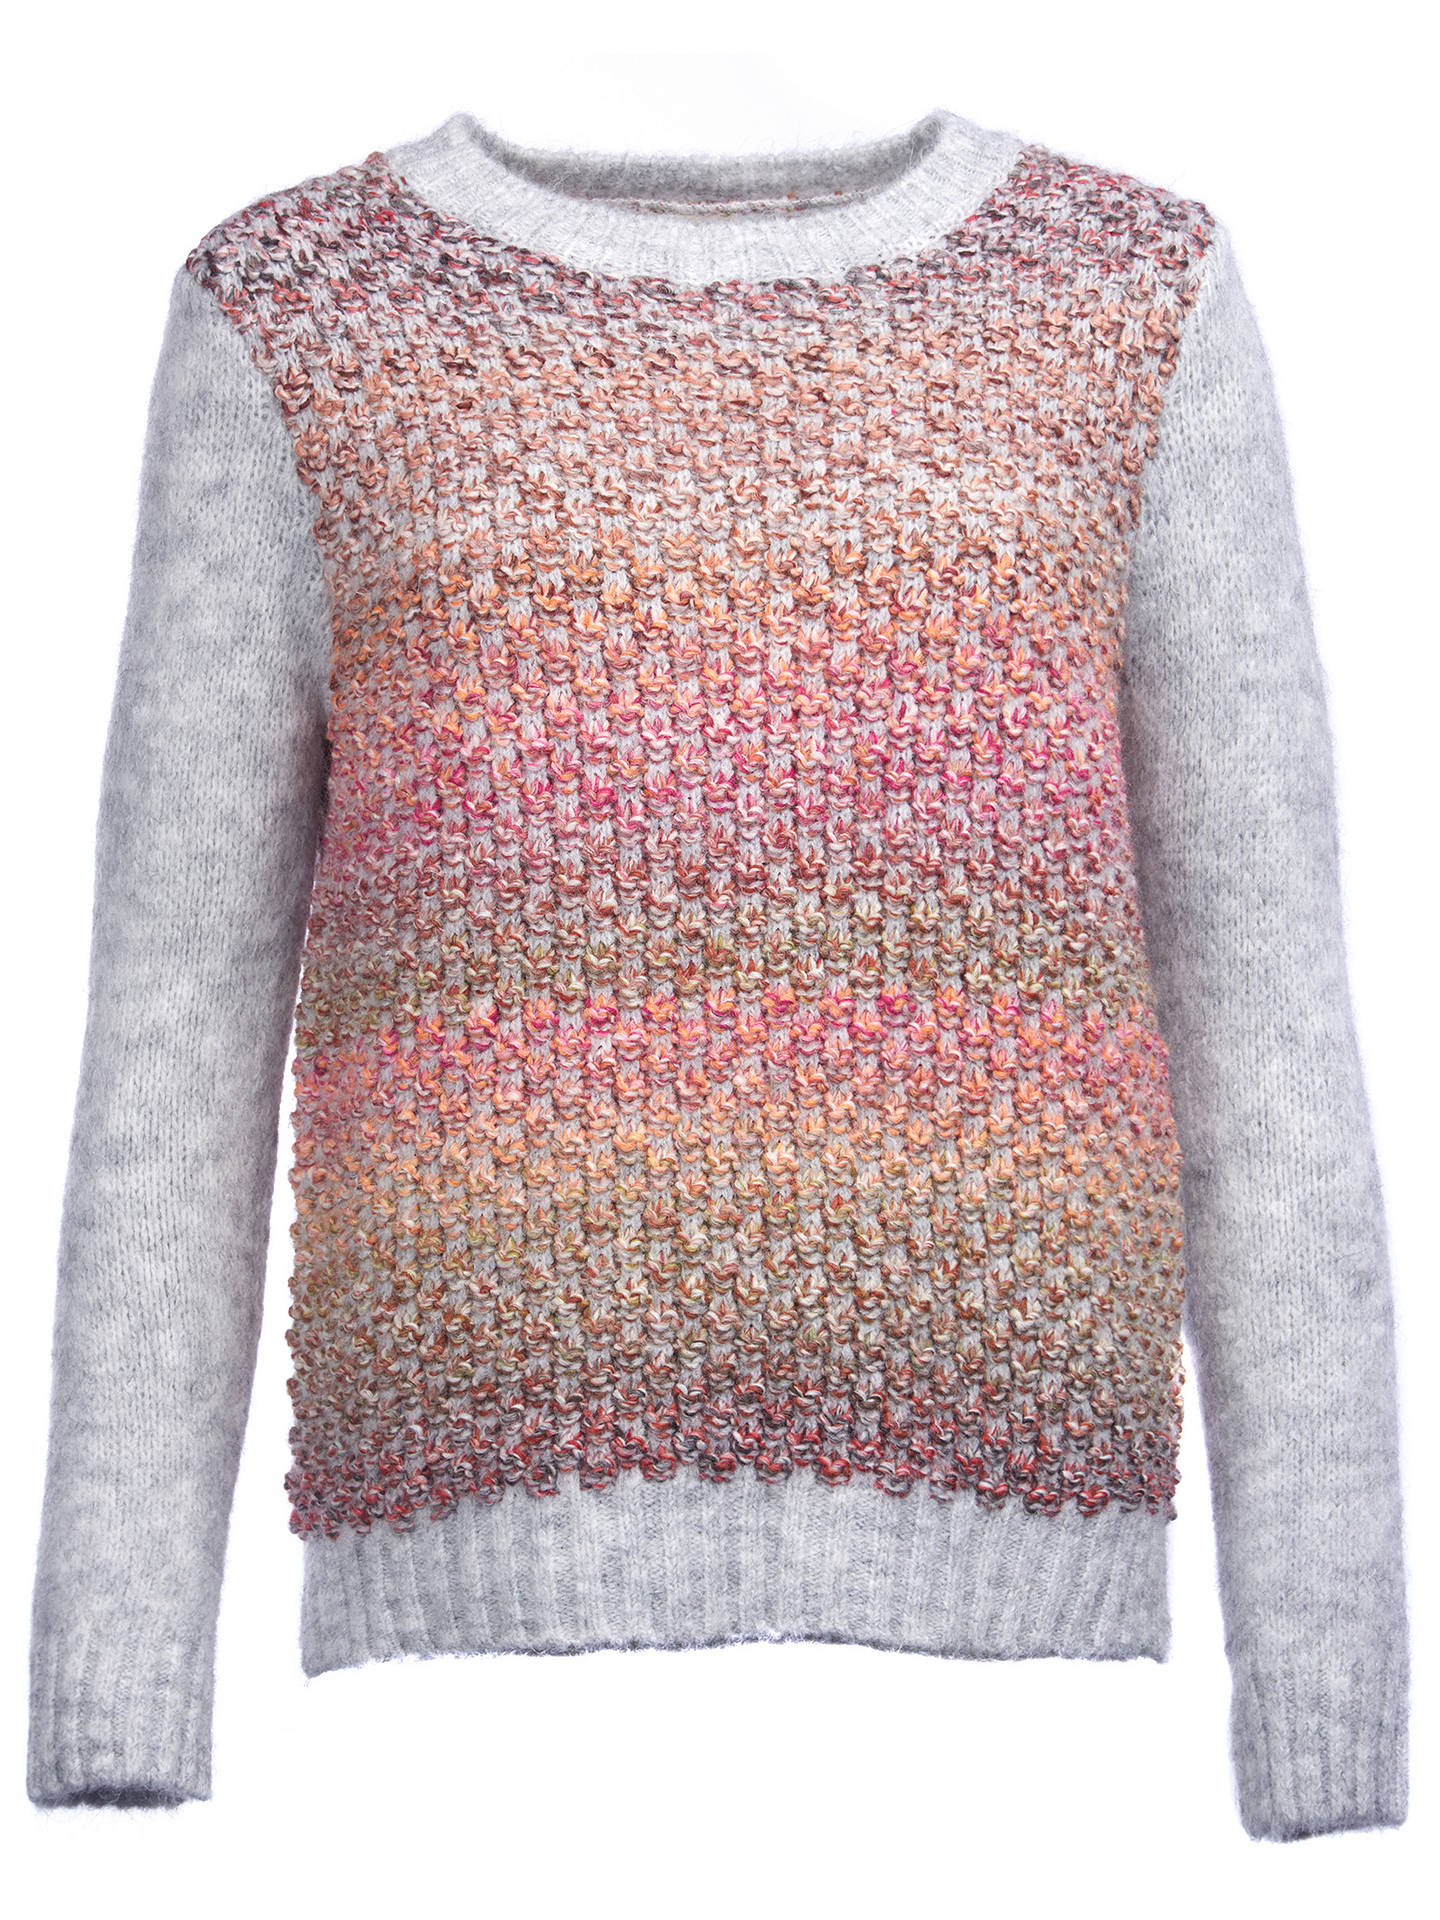 BuyBarbour Hamble Moss Stitch Jumper, Light Grey Marl, 8 Online at johnlewis.com